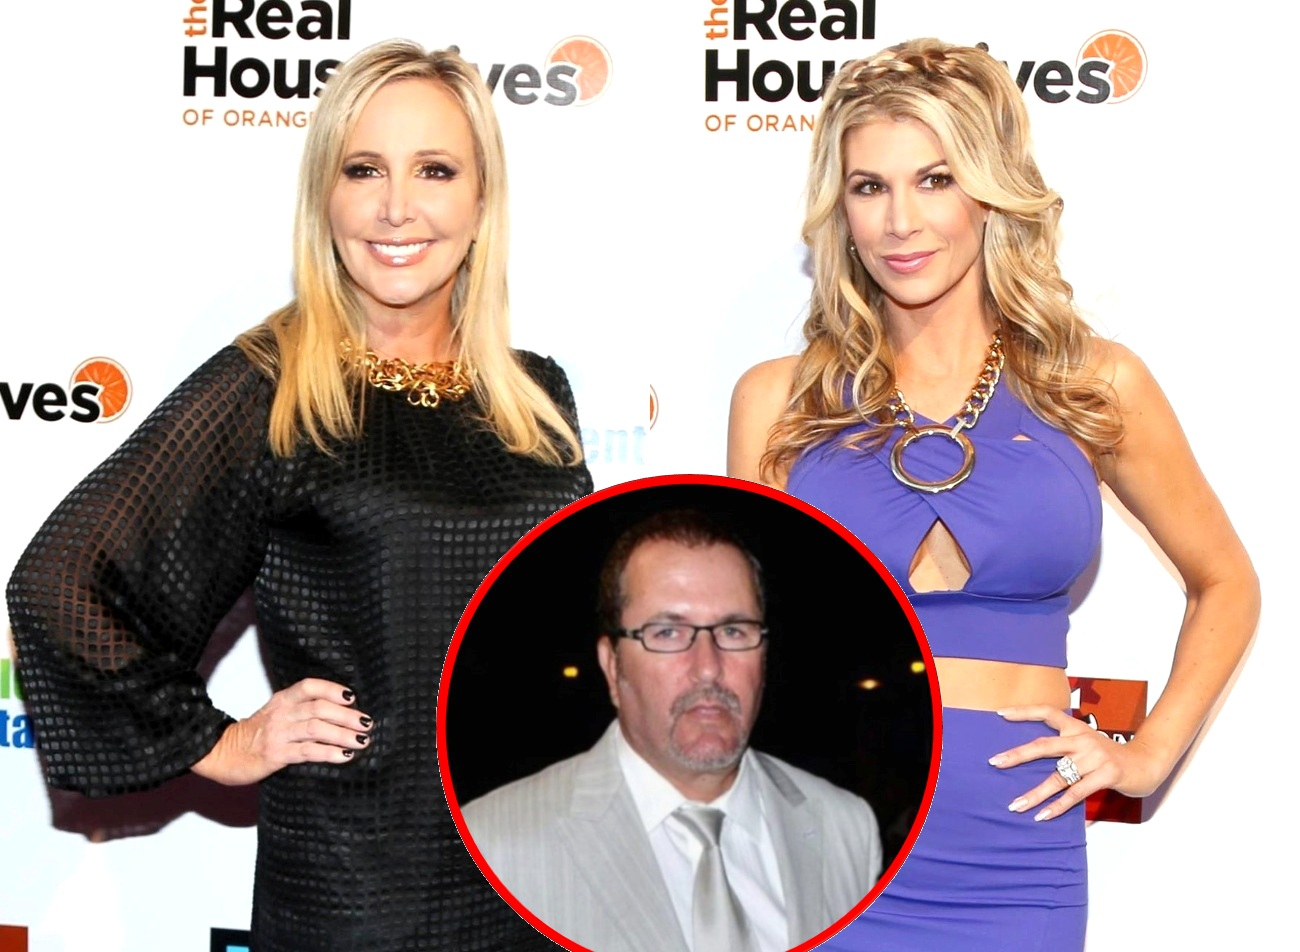 RHOC's Shannon Beador Wants to Question Alexis Bellino After Being Dismissed From Jim Bellino's $1 Million Lawsuit, Find Out Why